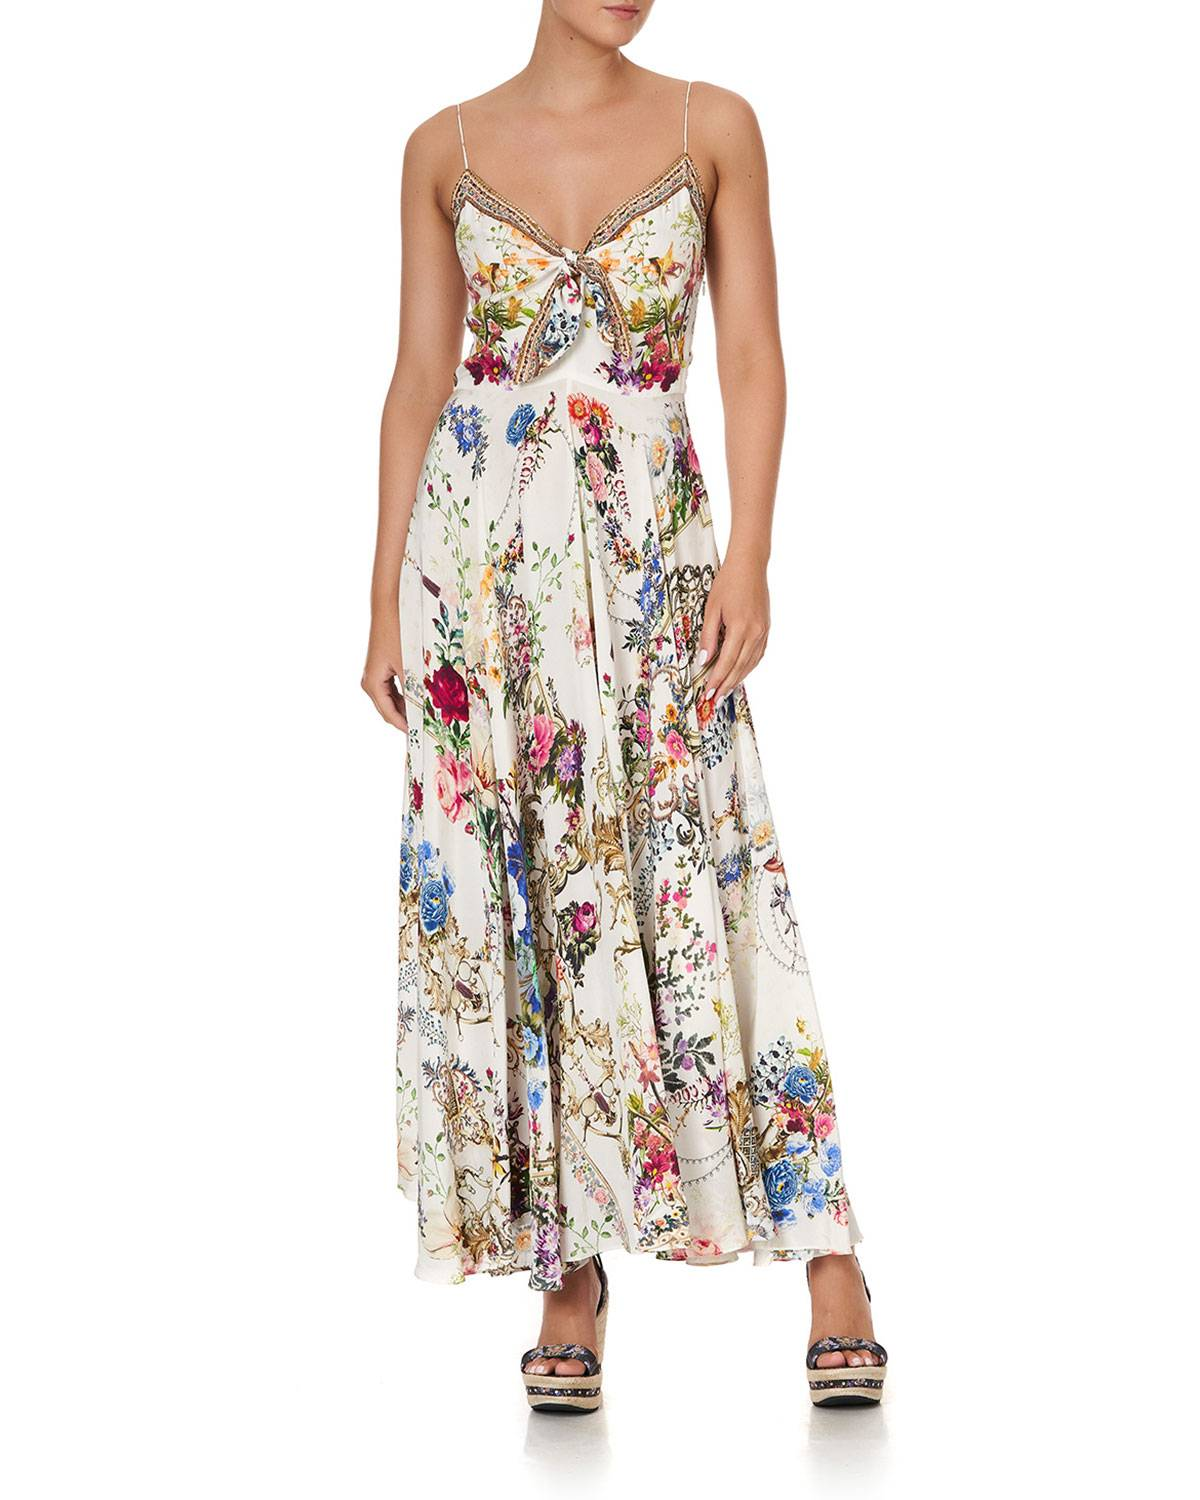 Camilla Sweetheart Floral Long Dress w/ Tie-Front - Size: Medium